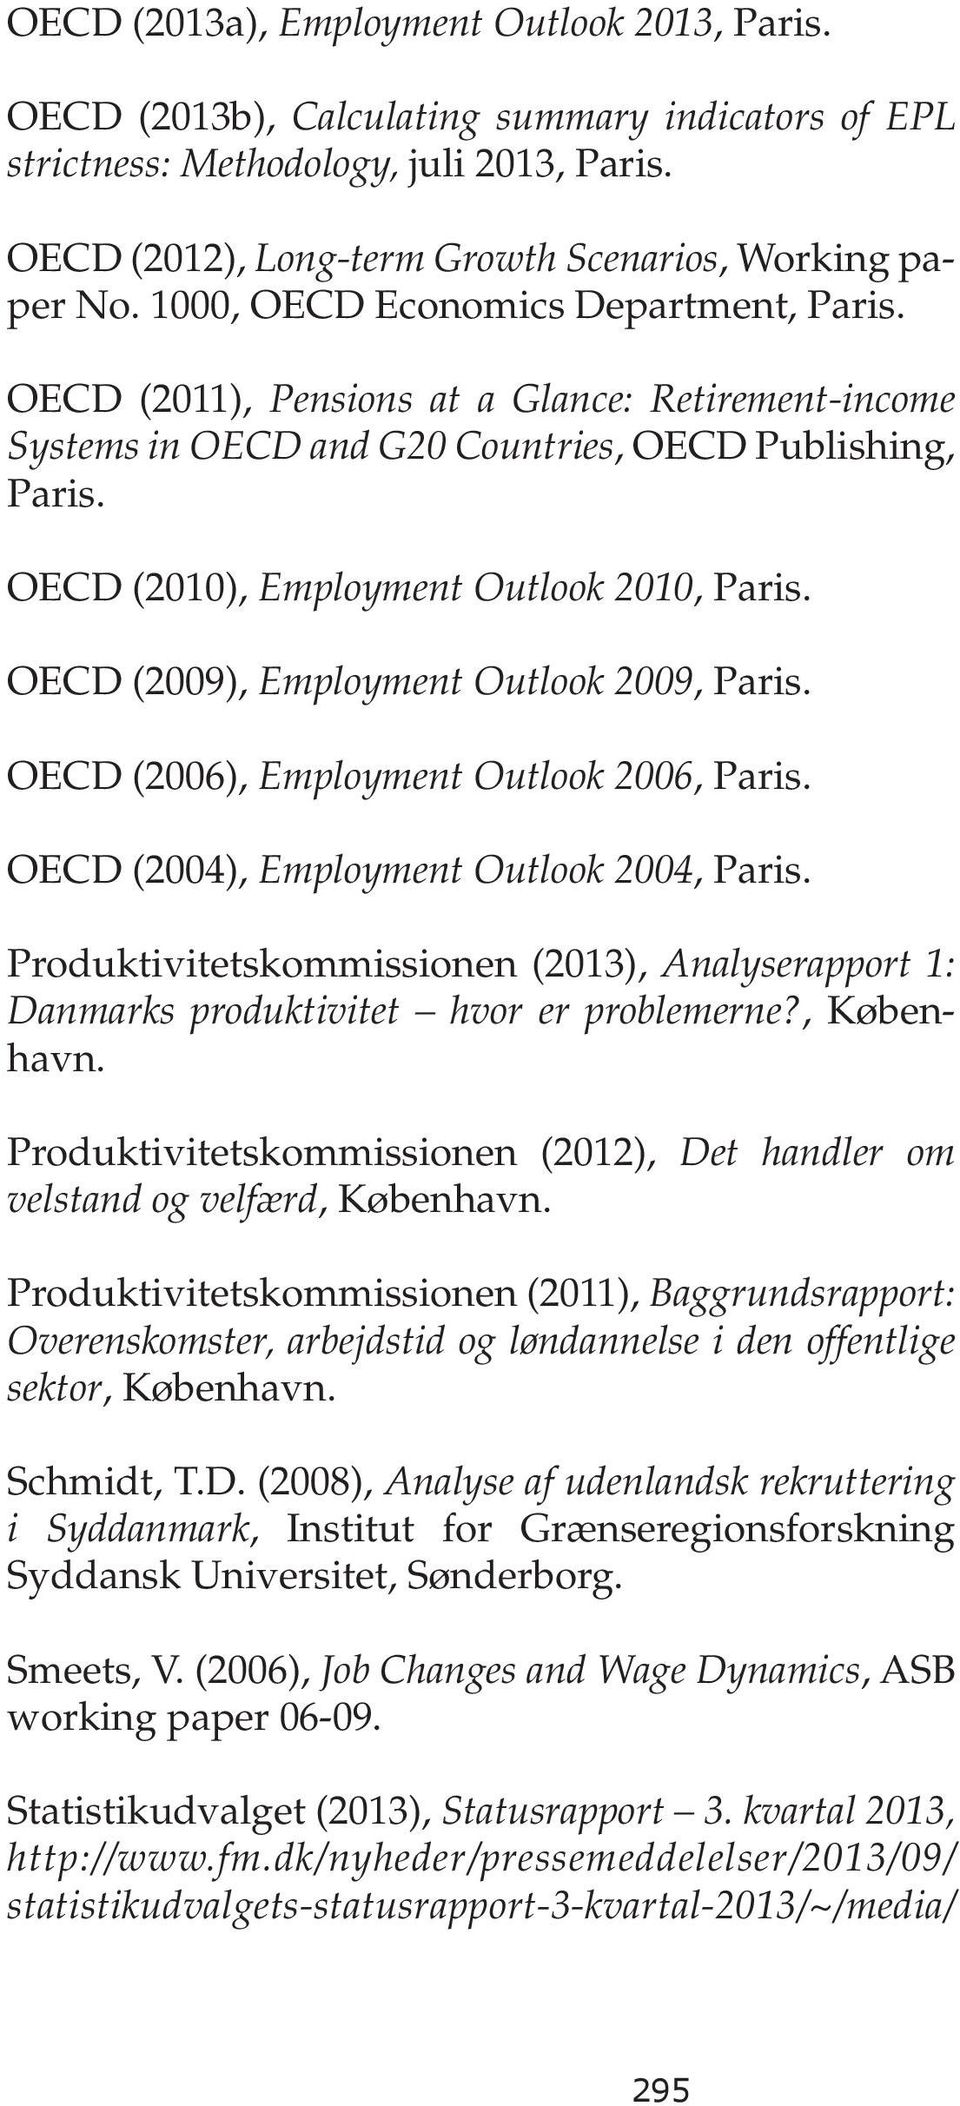 OECD (2009), Employment Outlook 2009, Paris. OECD (2006), Employment Outlook 2006, Paris. OECD (2004), Employment Outlook 2004, Paris.